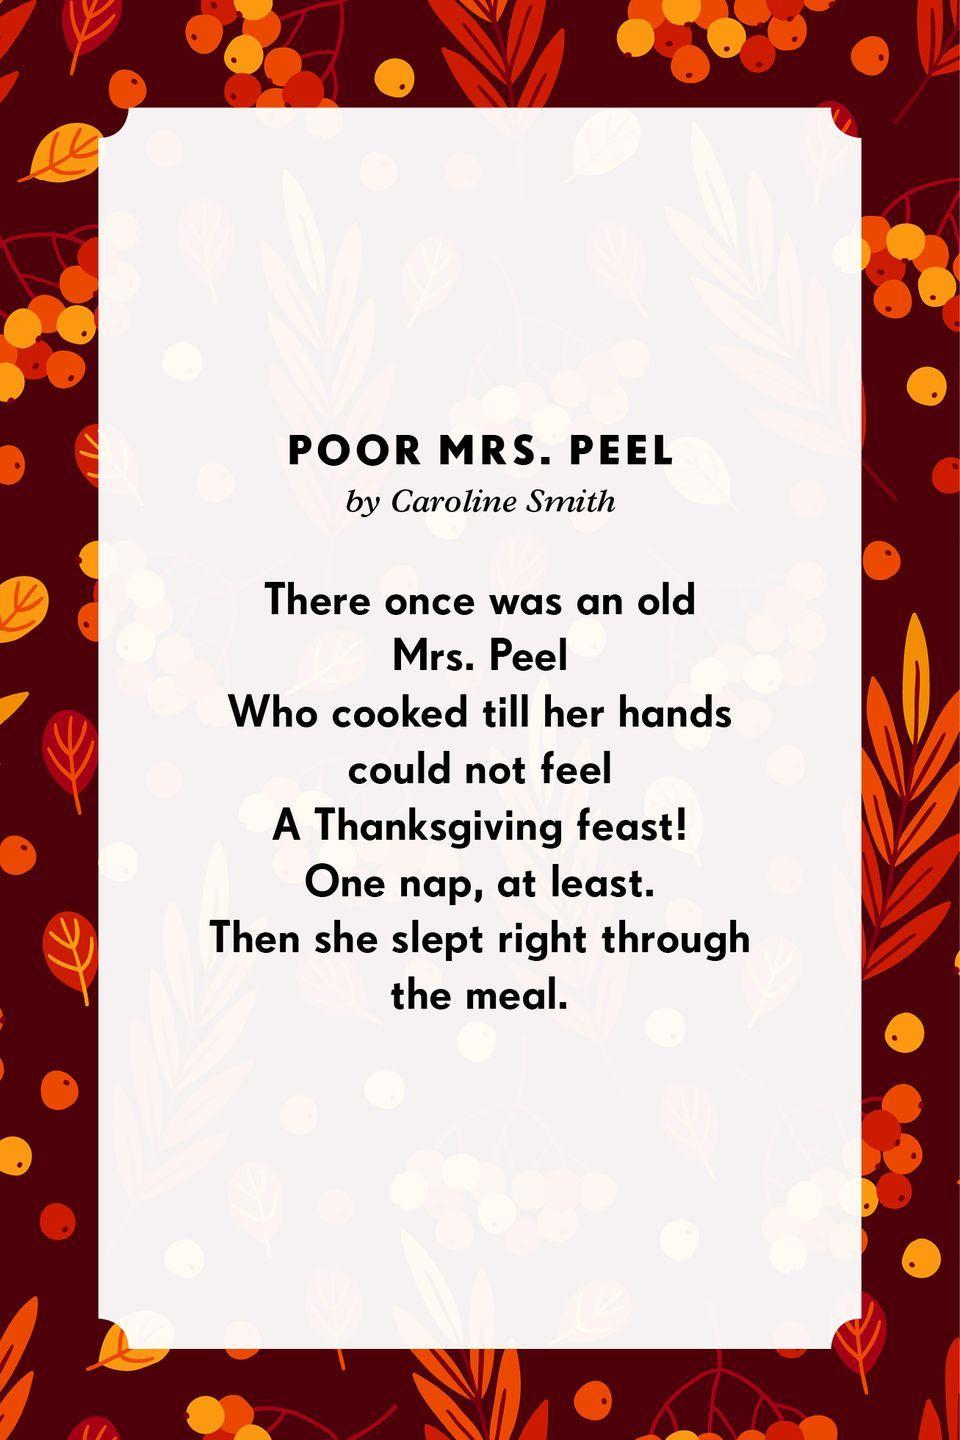 <p><strong>Poor Mrs. Peel</strong></p><p>There once was an old Mrs. Peel<br>Who cooked till her hands could not feel<br>A Thanksgiving feast!<br>One nap, at least.<br>Then she slept right through the meal.</p>